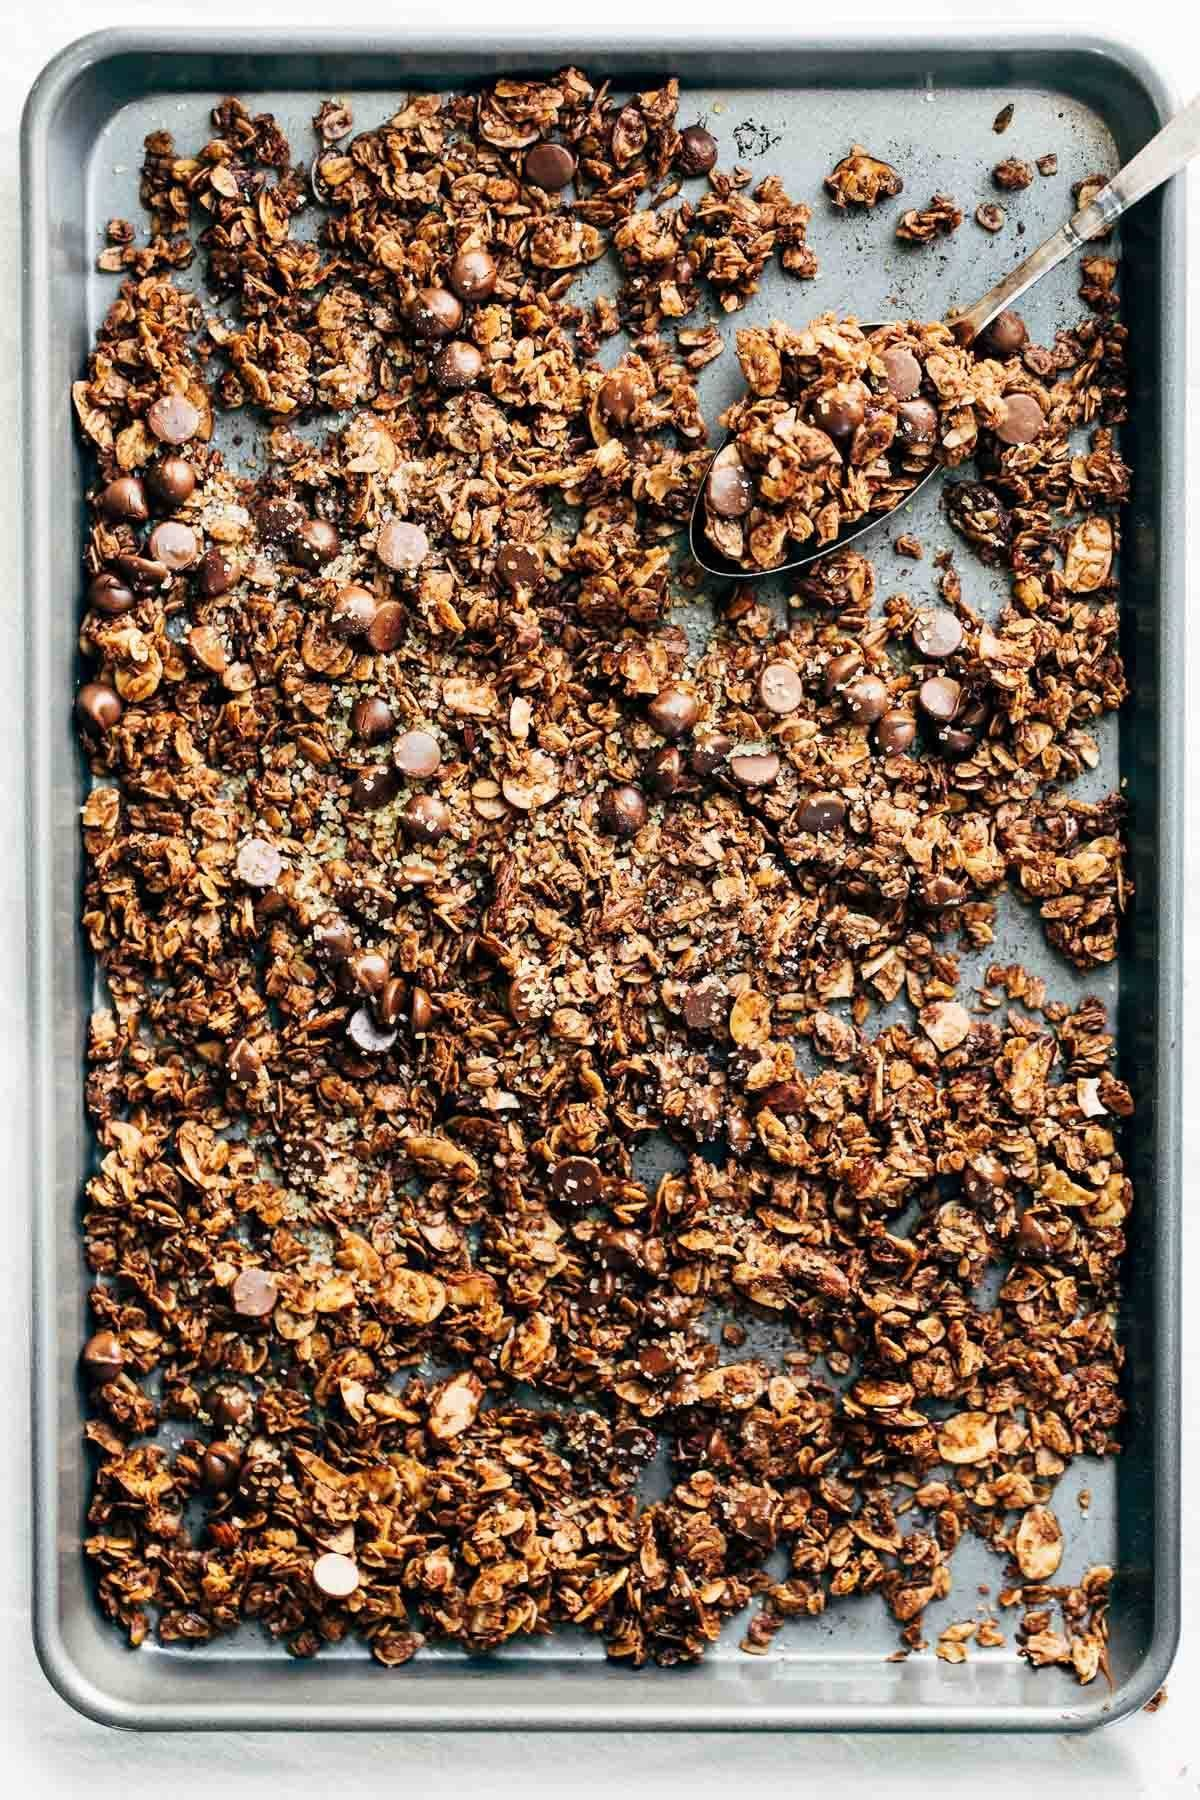 The Ultimate Chocolate Granola - made with oats, almonds, coconut flakes, chocolate chips, and topped with crunchy turbinado sugar and sea salt. Quick, easy, and totally addicting.